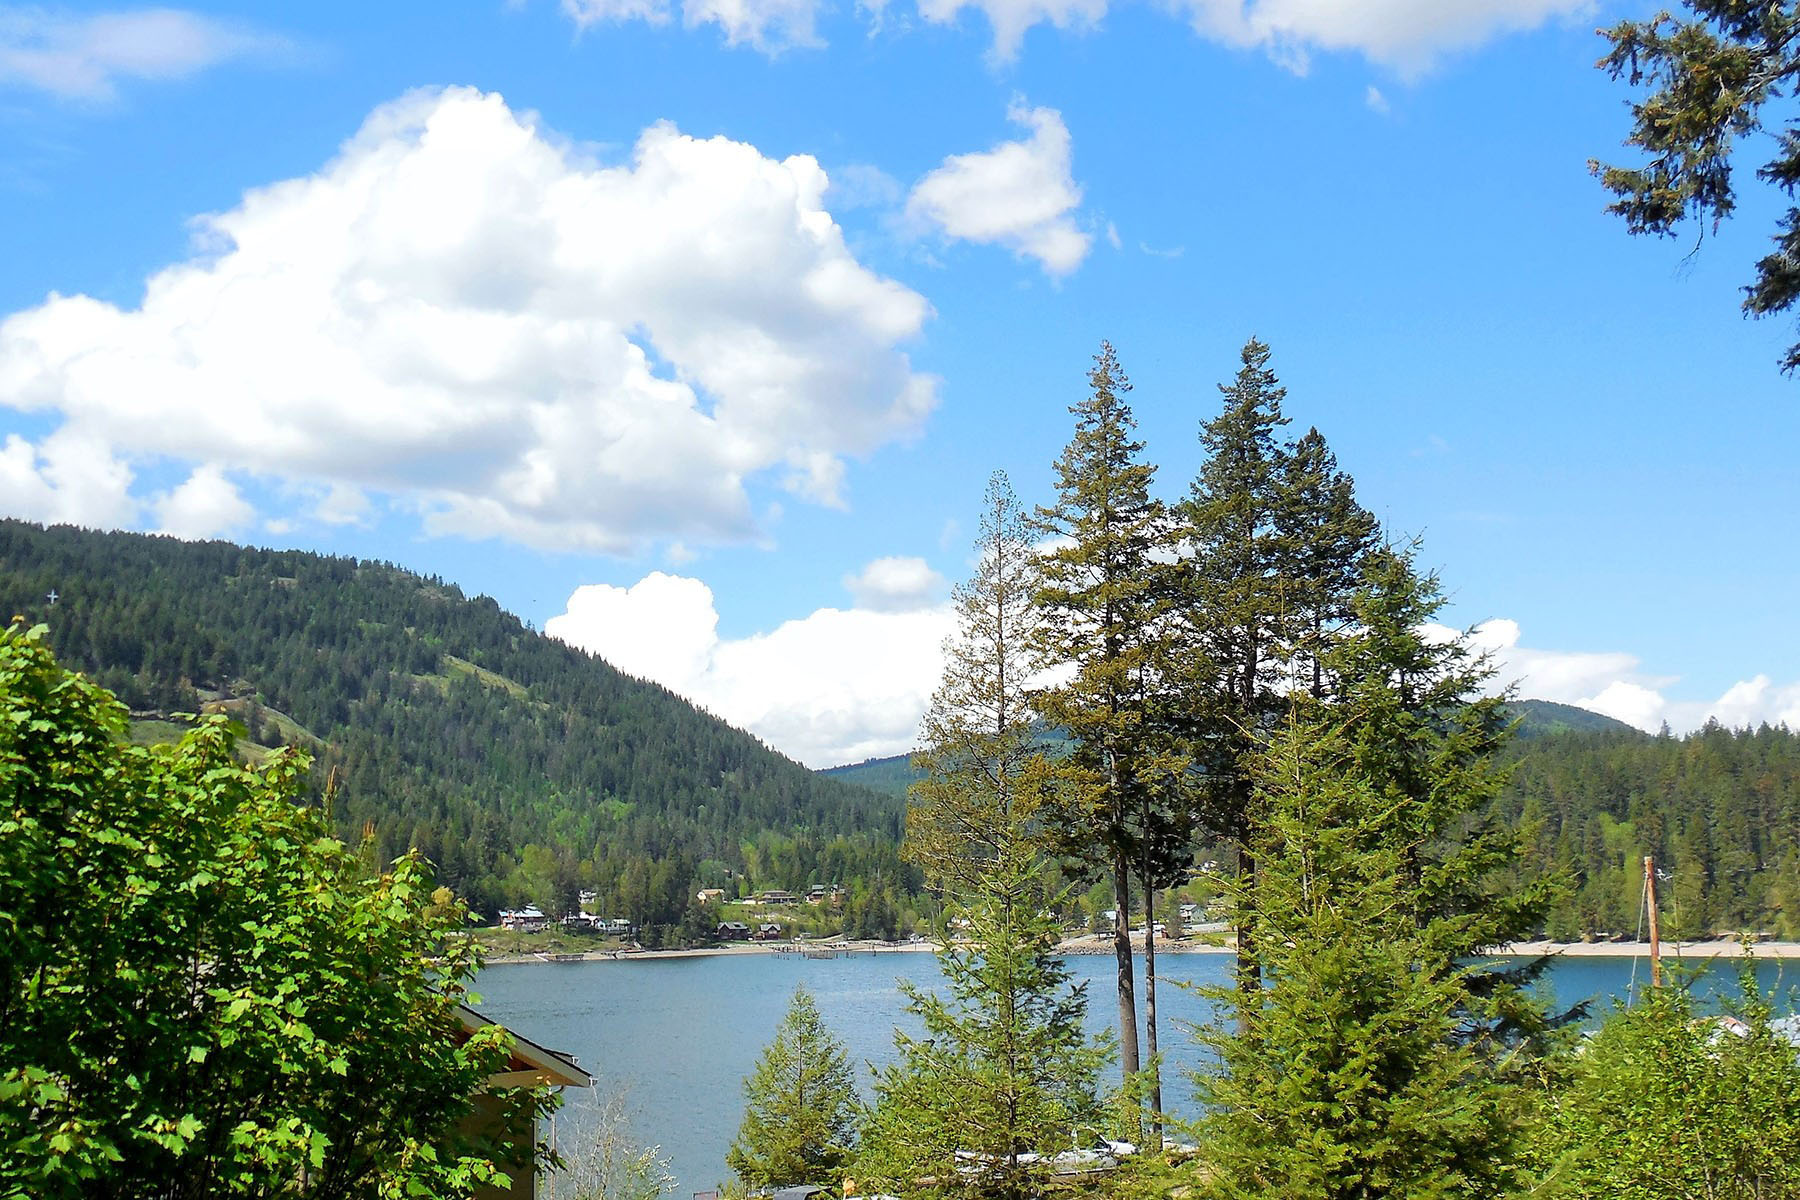 Land for Sale at Garfield Bay Paradise Lot 7 Hoffman Ave, Sagle, Idaho, 83860 United States